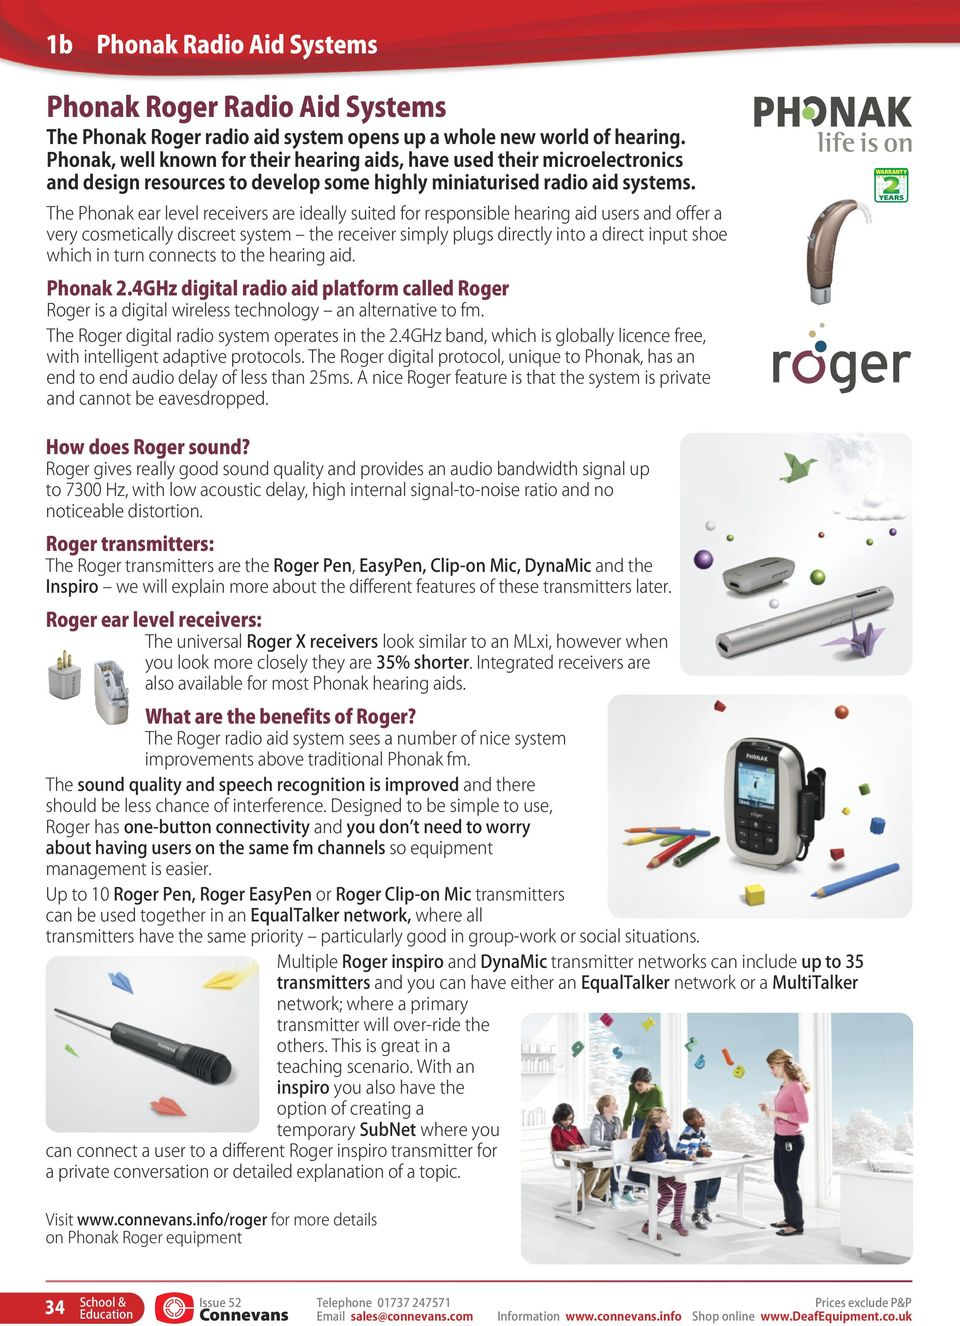 The Phonak ear level receivers are ideally suited for responsible hearing aid users and offer a very cosmetically discreet system the receiver simply plugs directly into a direct input shoe which in